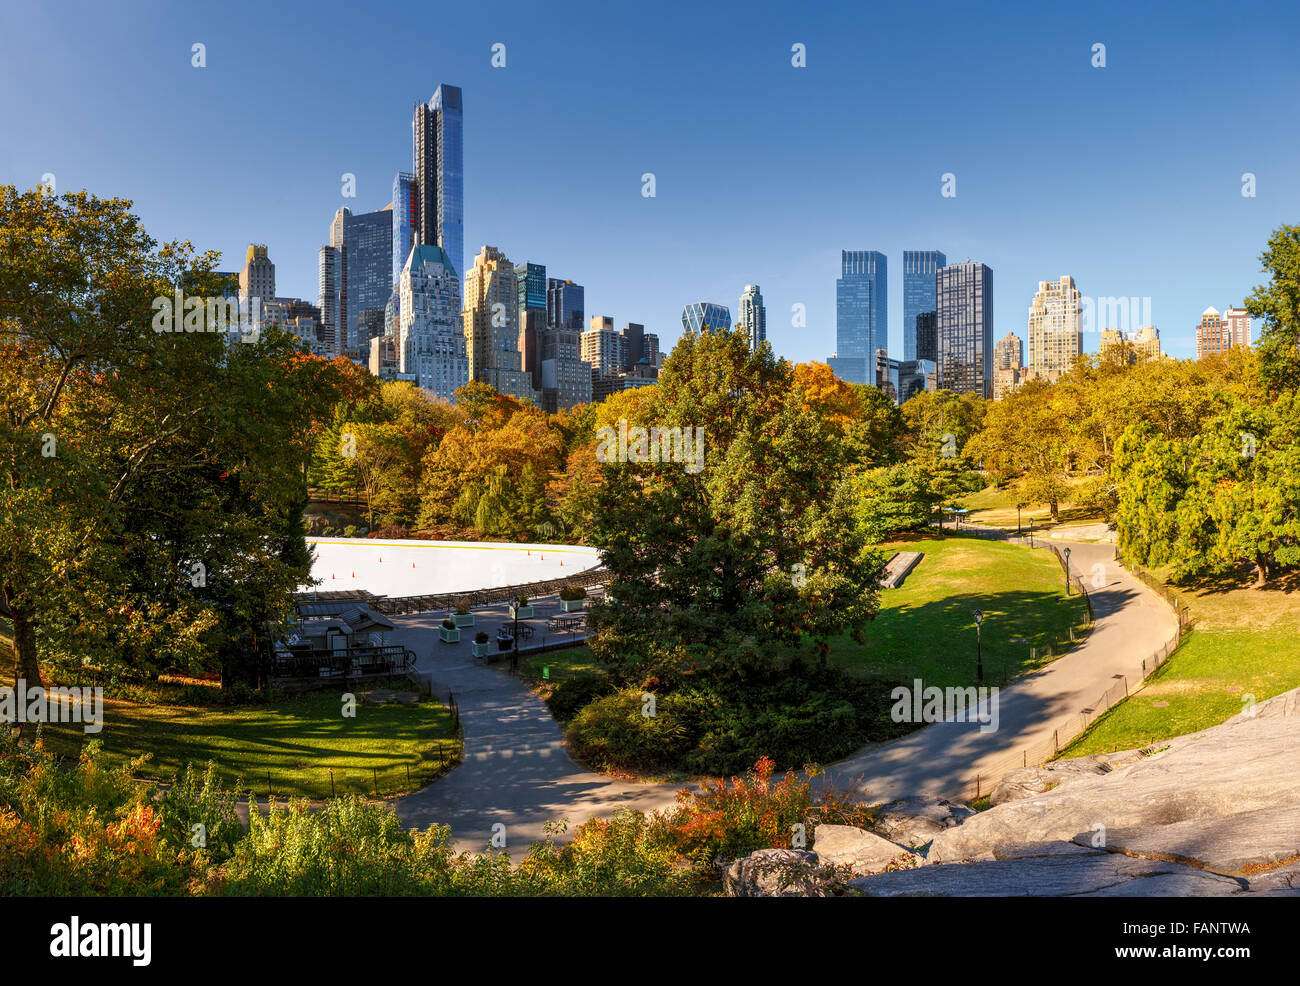 fallen im central park wollman rink und manhattan wolkenkratzer stadtbild herbst blick auf. Black Bedroom Furniture Sets. Home Design Ideas